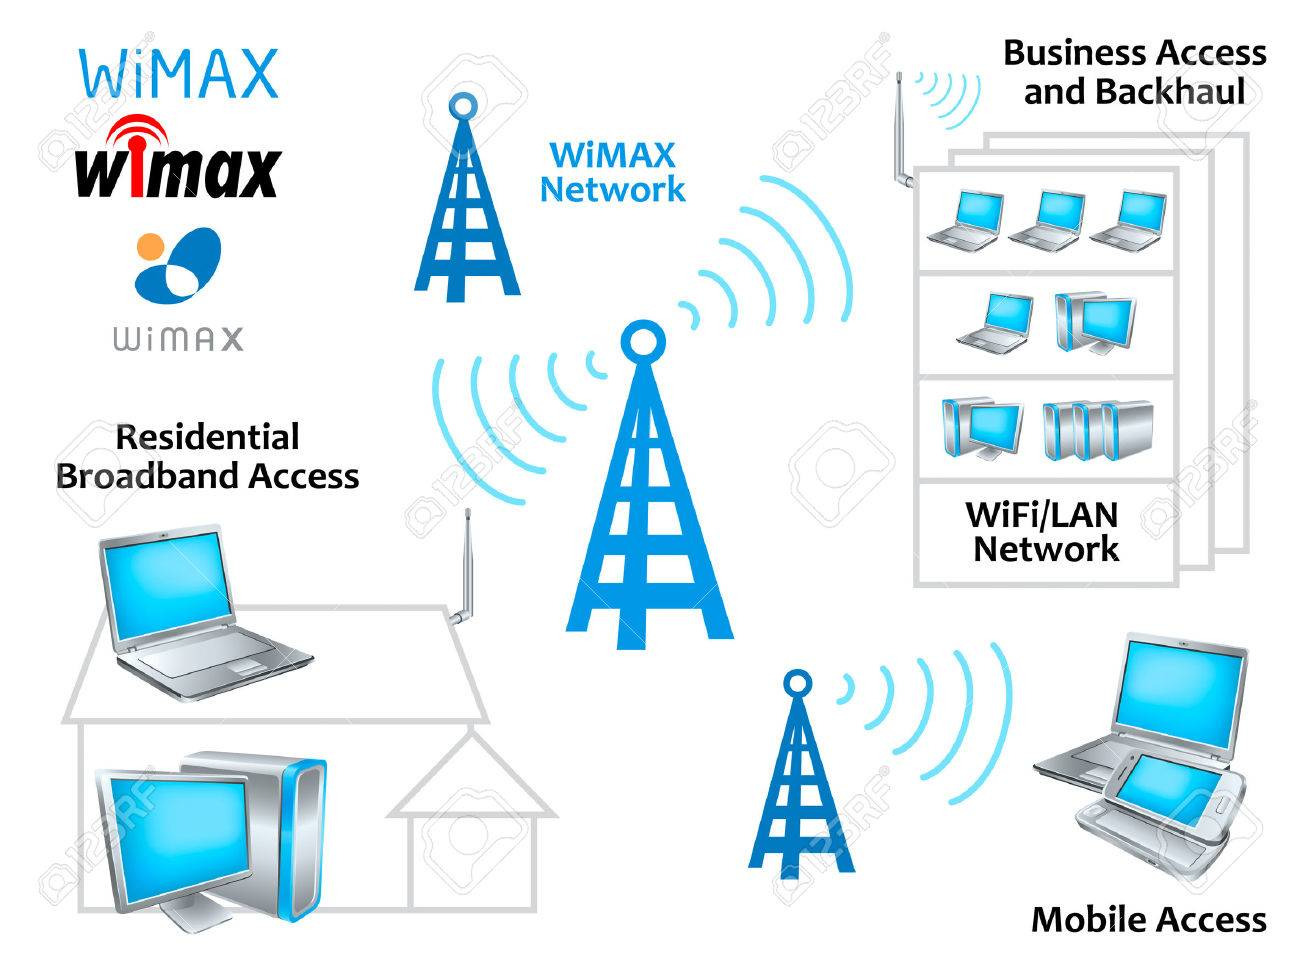 6845940 wimax network diagram with glossy hi tech devices and symbols wimax network diagram with glossy hi tech devices and symbols